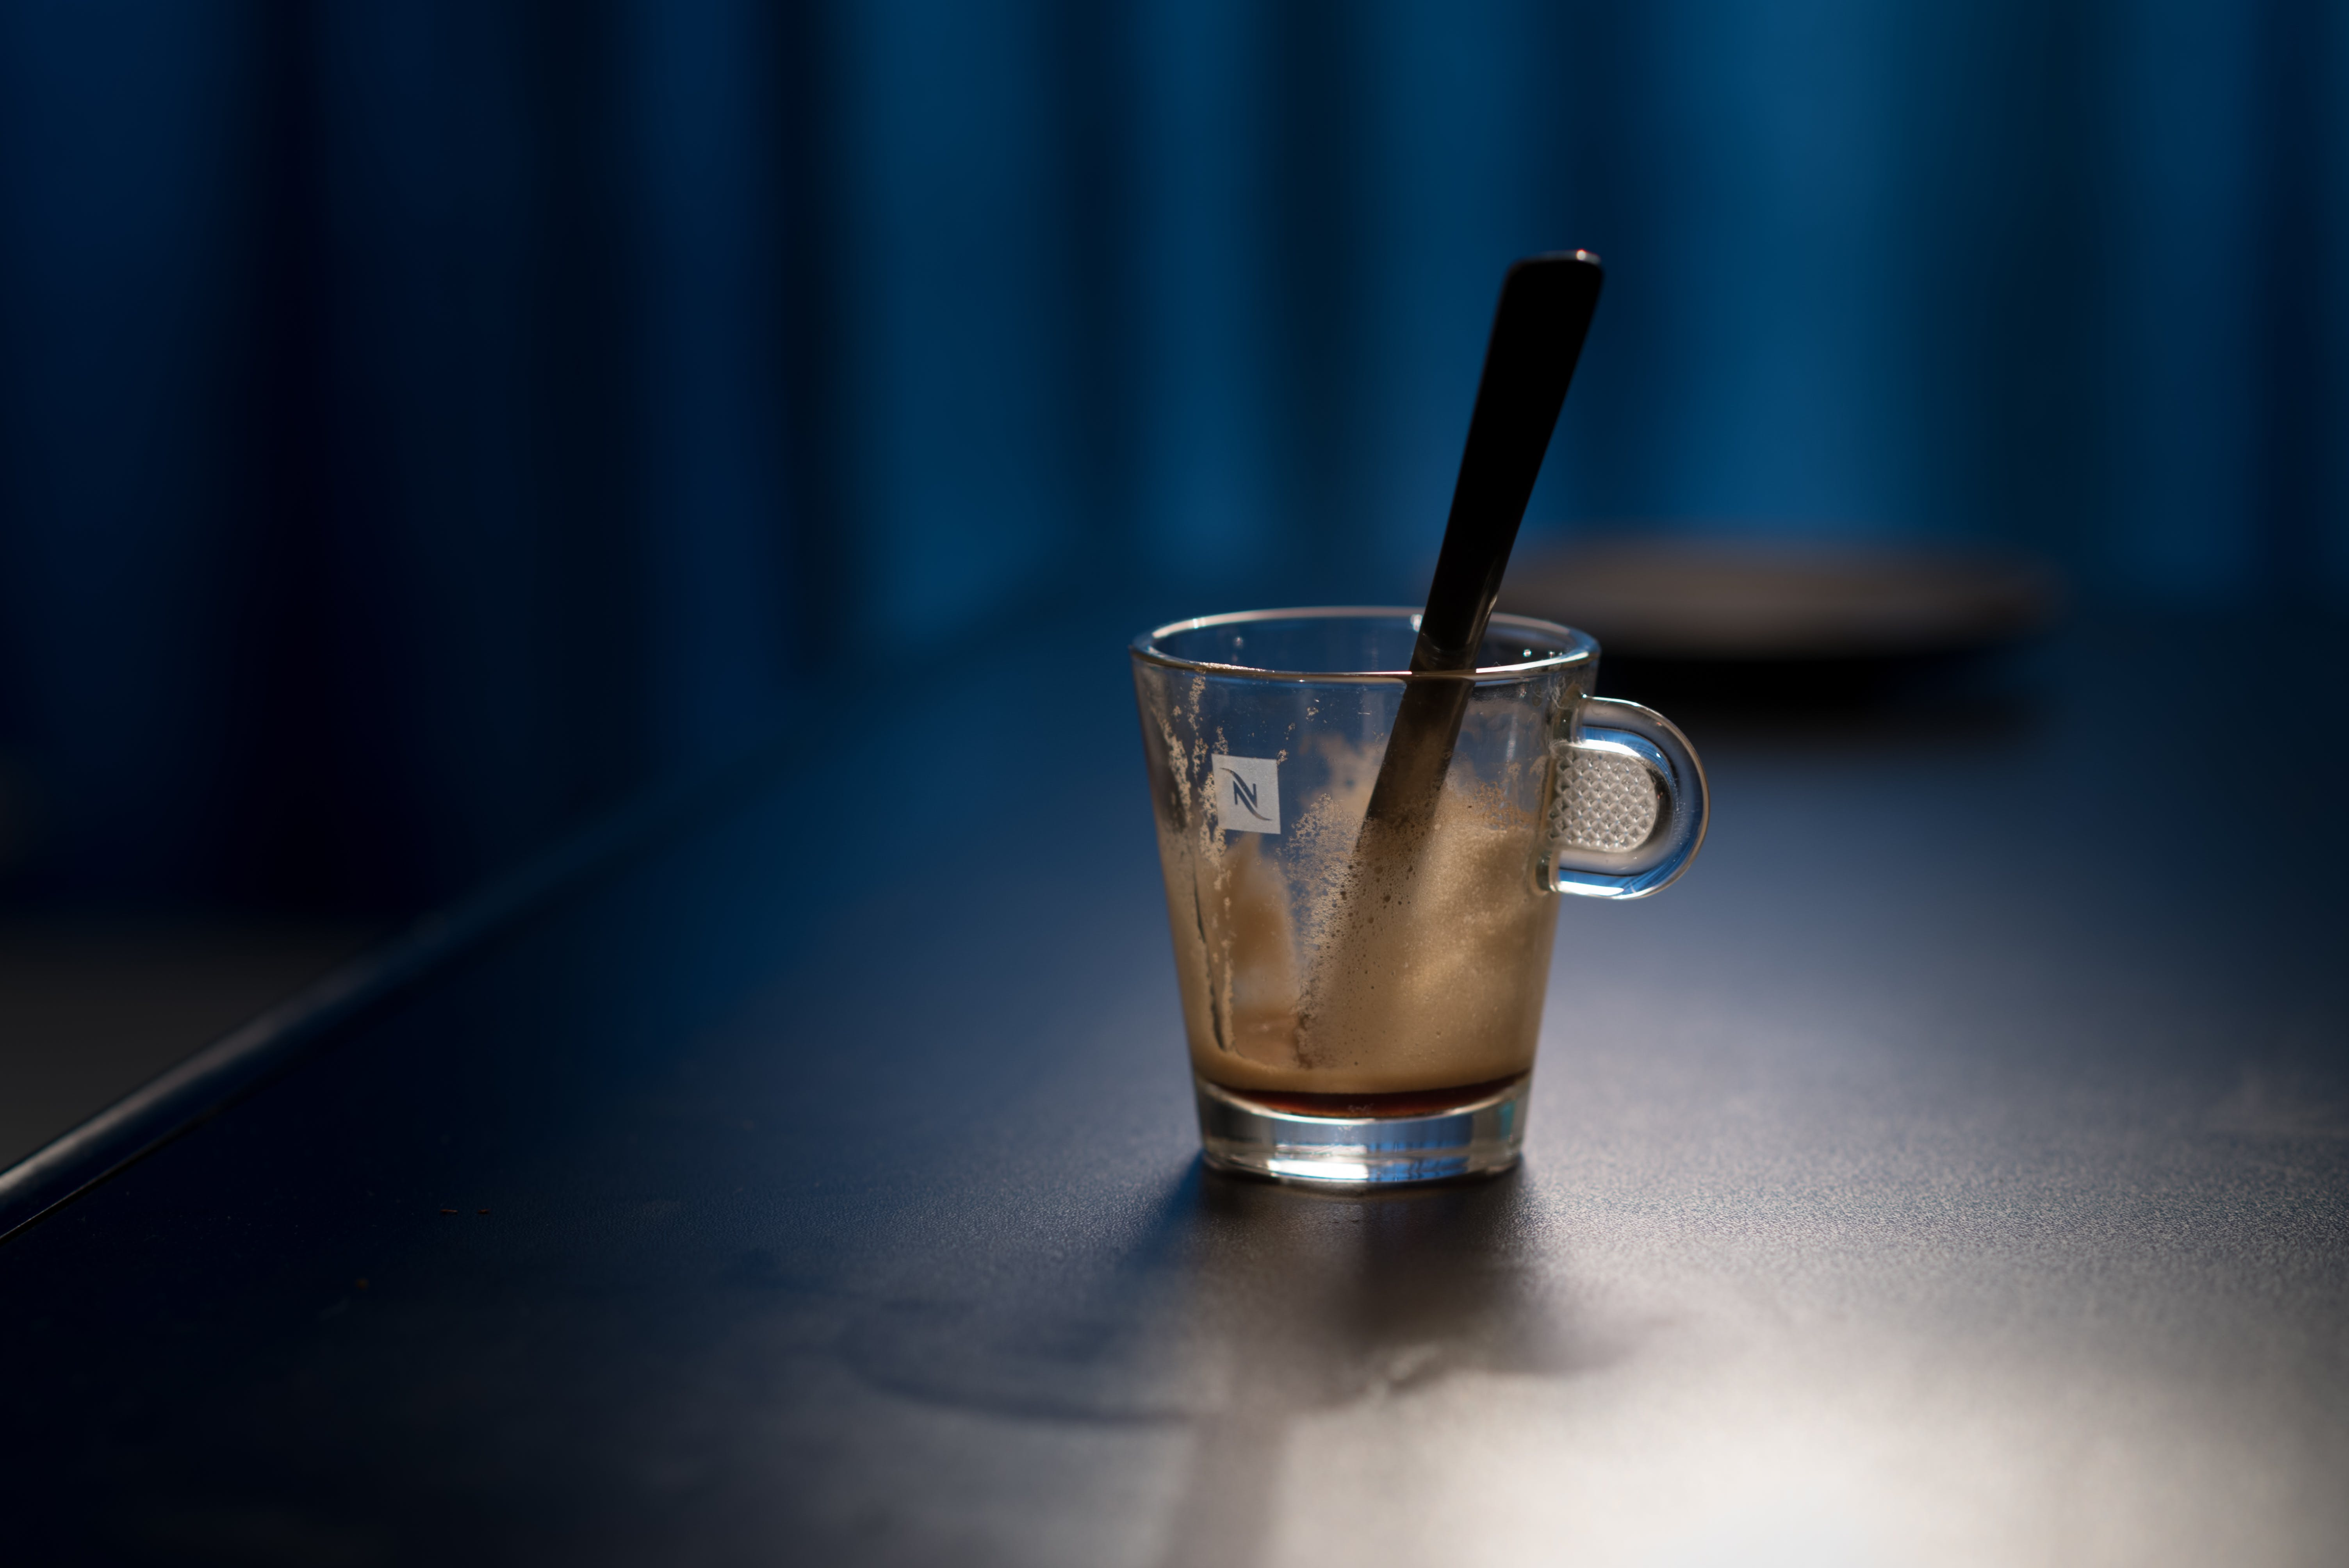 Black Stirring Rod on Clear Glass Cup